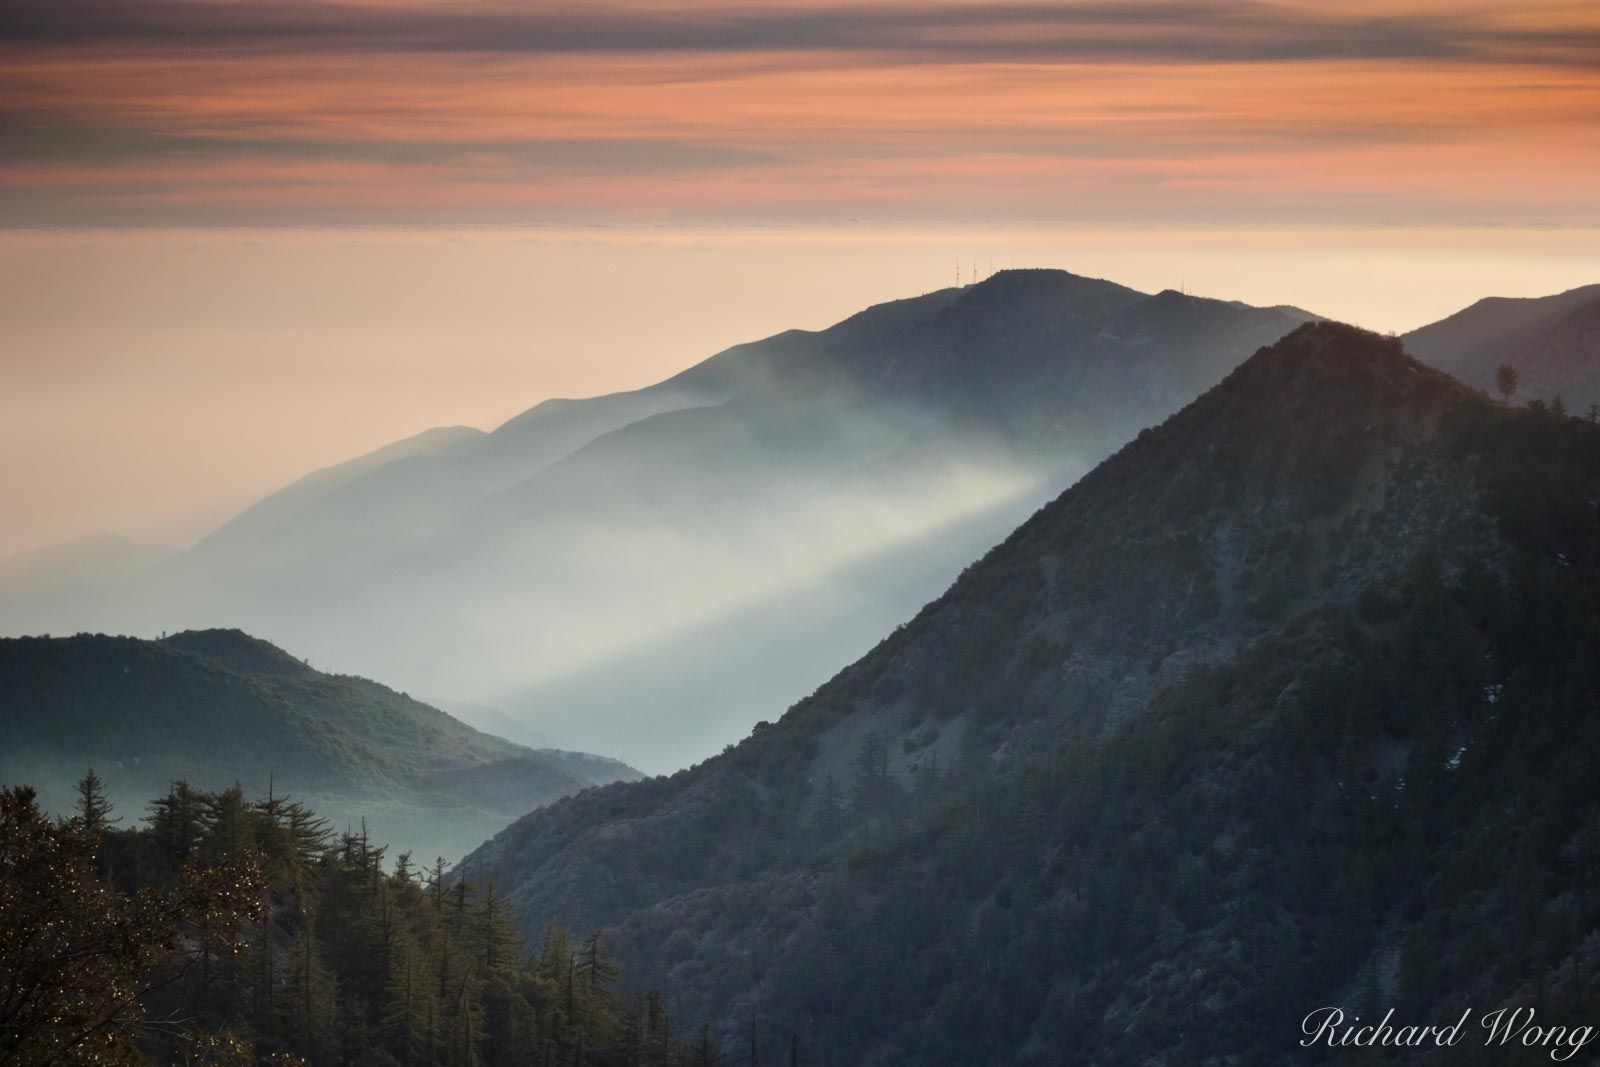 San Gabriel Mountains Sunset on Mount Baldy, Angeles National Forest, California, photo, photo